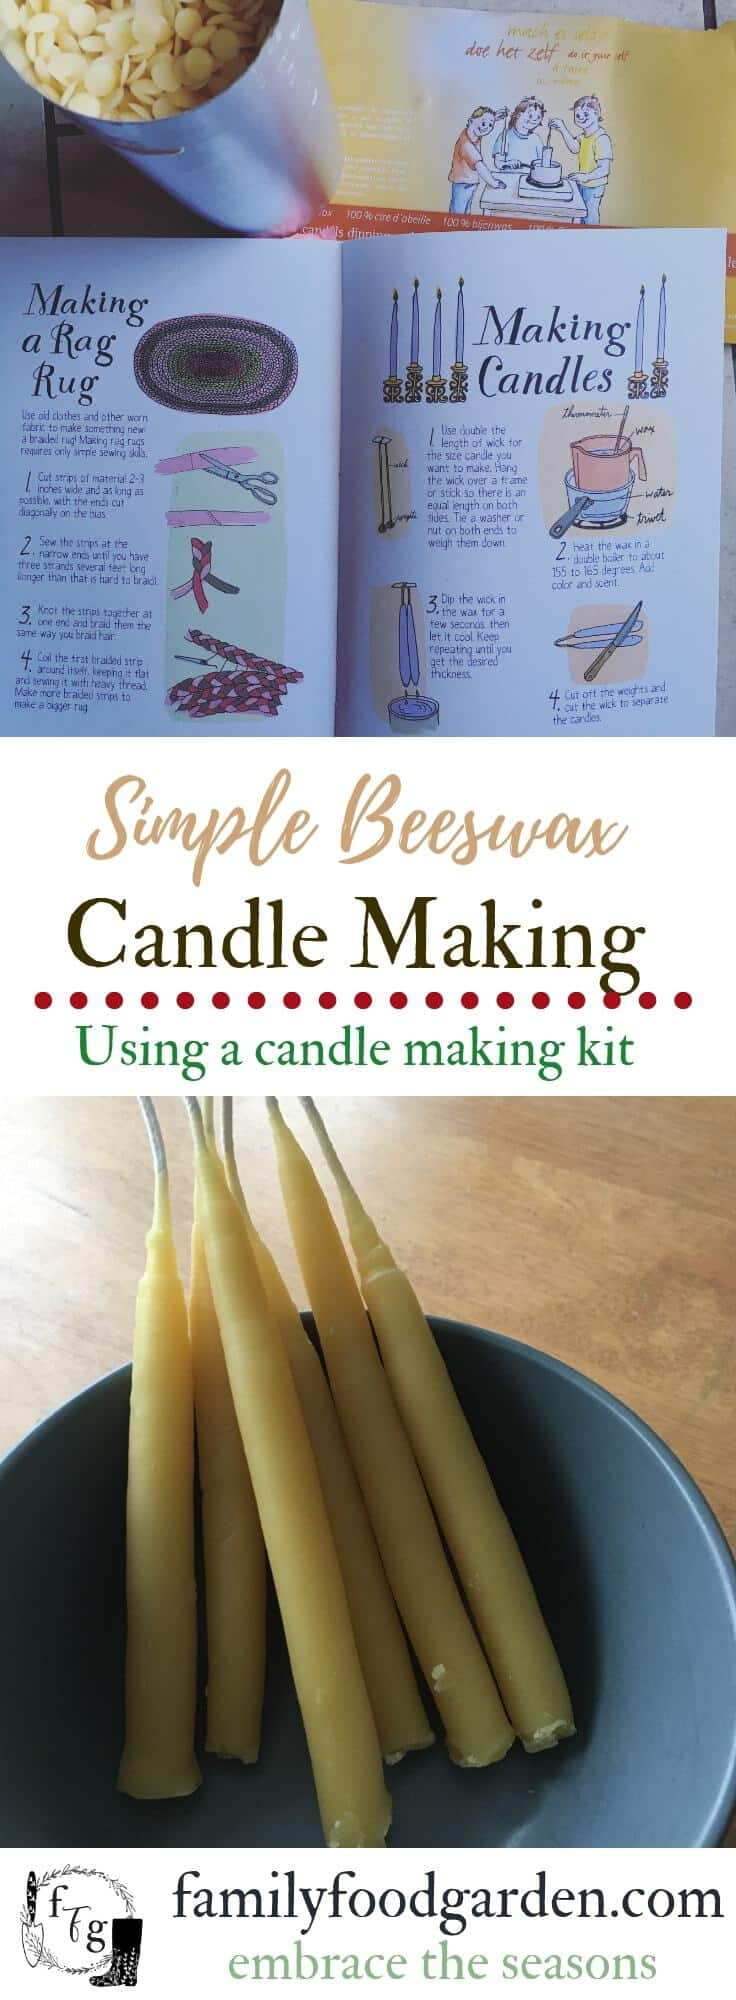 Candle making is an enjoyable way to enjoy the winter Christmas season. They make a great gift too! Candle making kit review using hand dipping beeswax candle making #candles #candlemaking #beeswax #simpleliving #homestead #homesteading #homeschool #kidscrafts #christmas #homedecor #wintersolstice #hygge